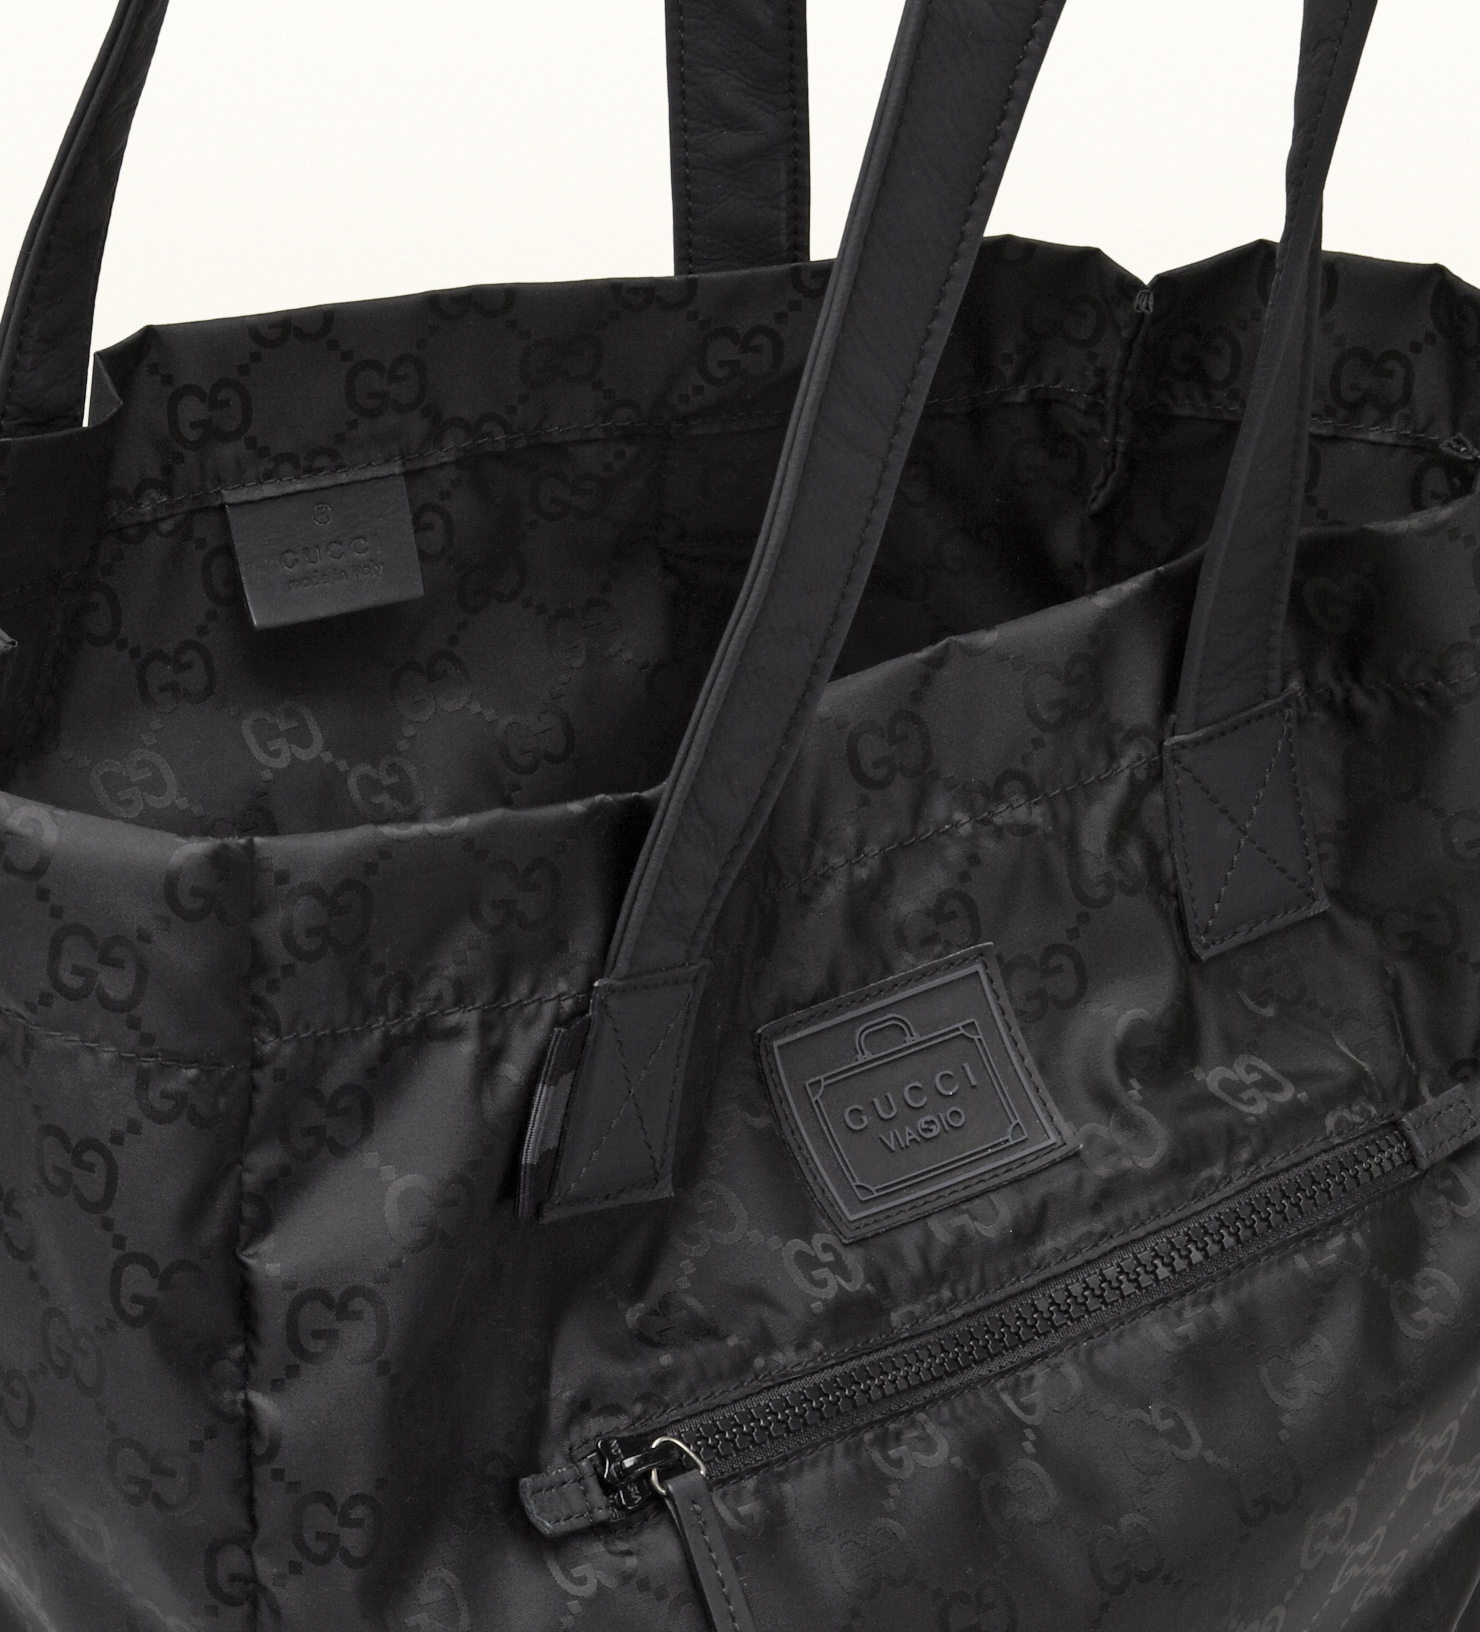 5c1c4af47523 Lyst - Gucci Black Gg Nylon Tote From Viaggio Collection in Black ...